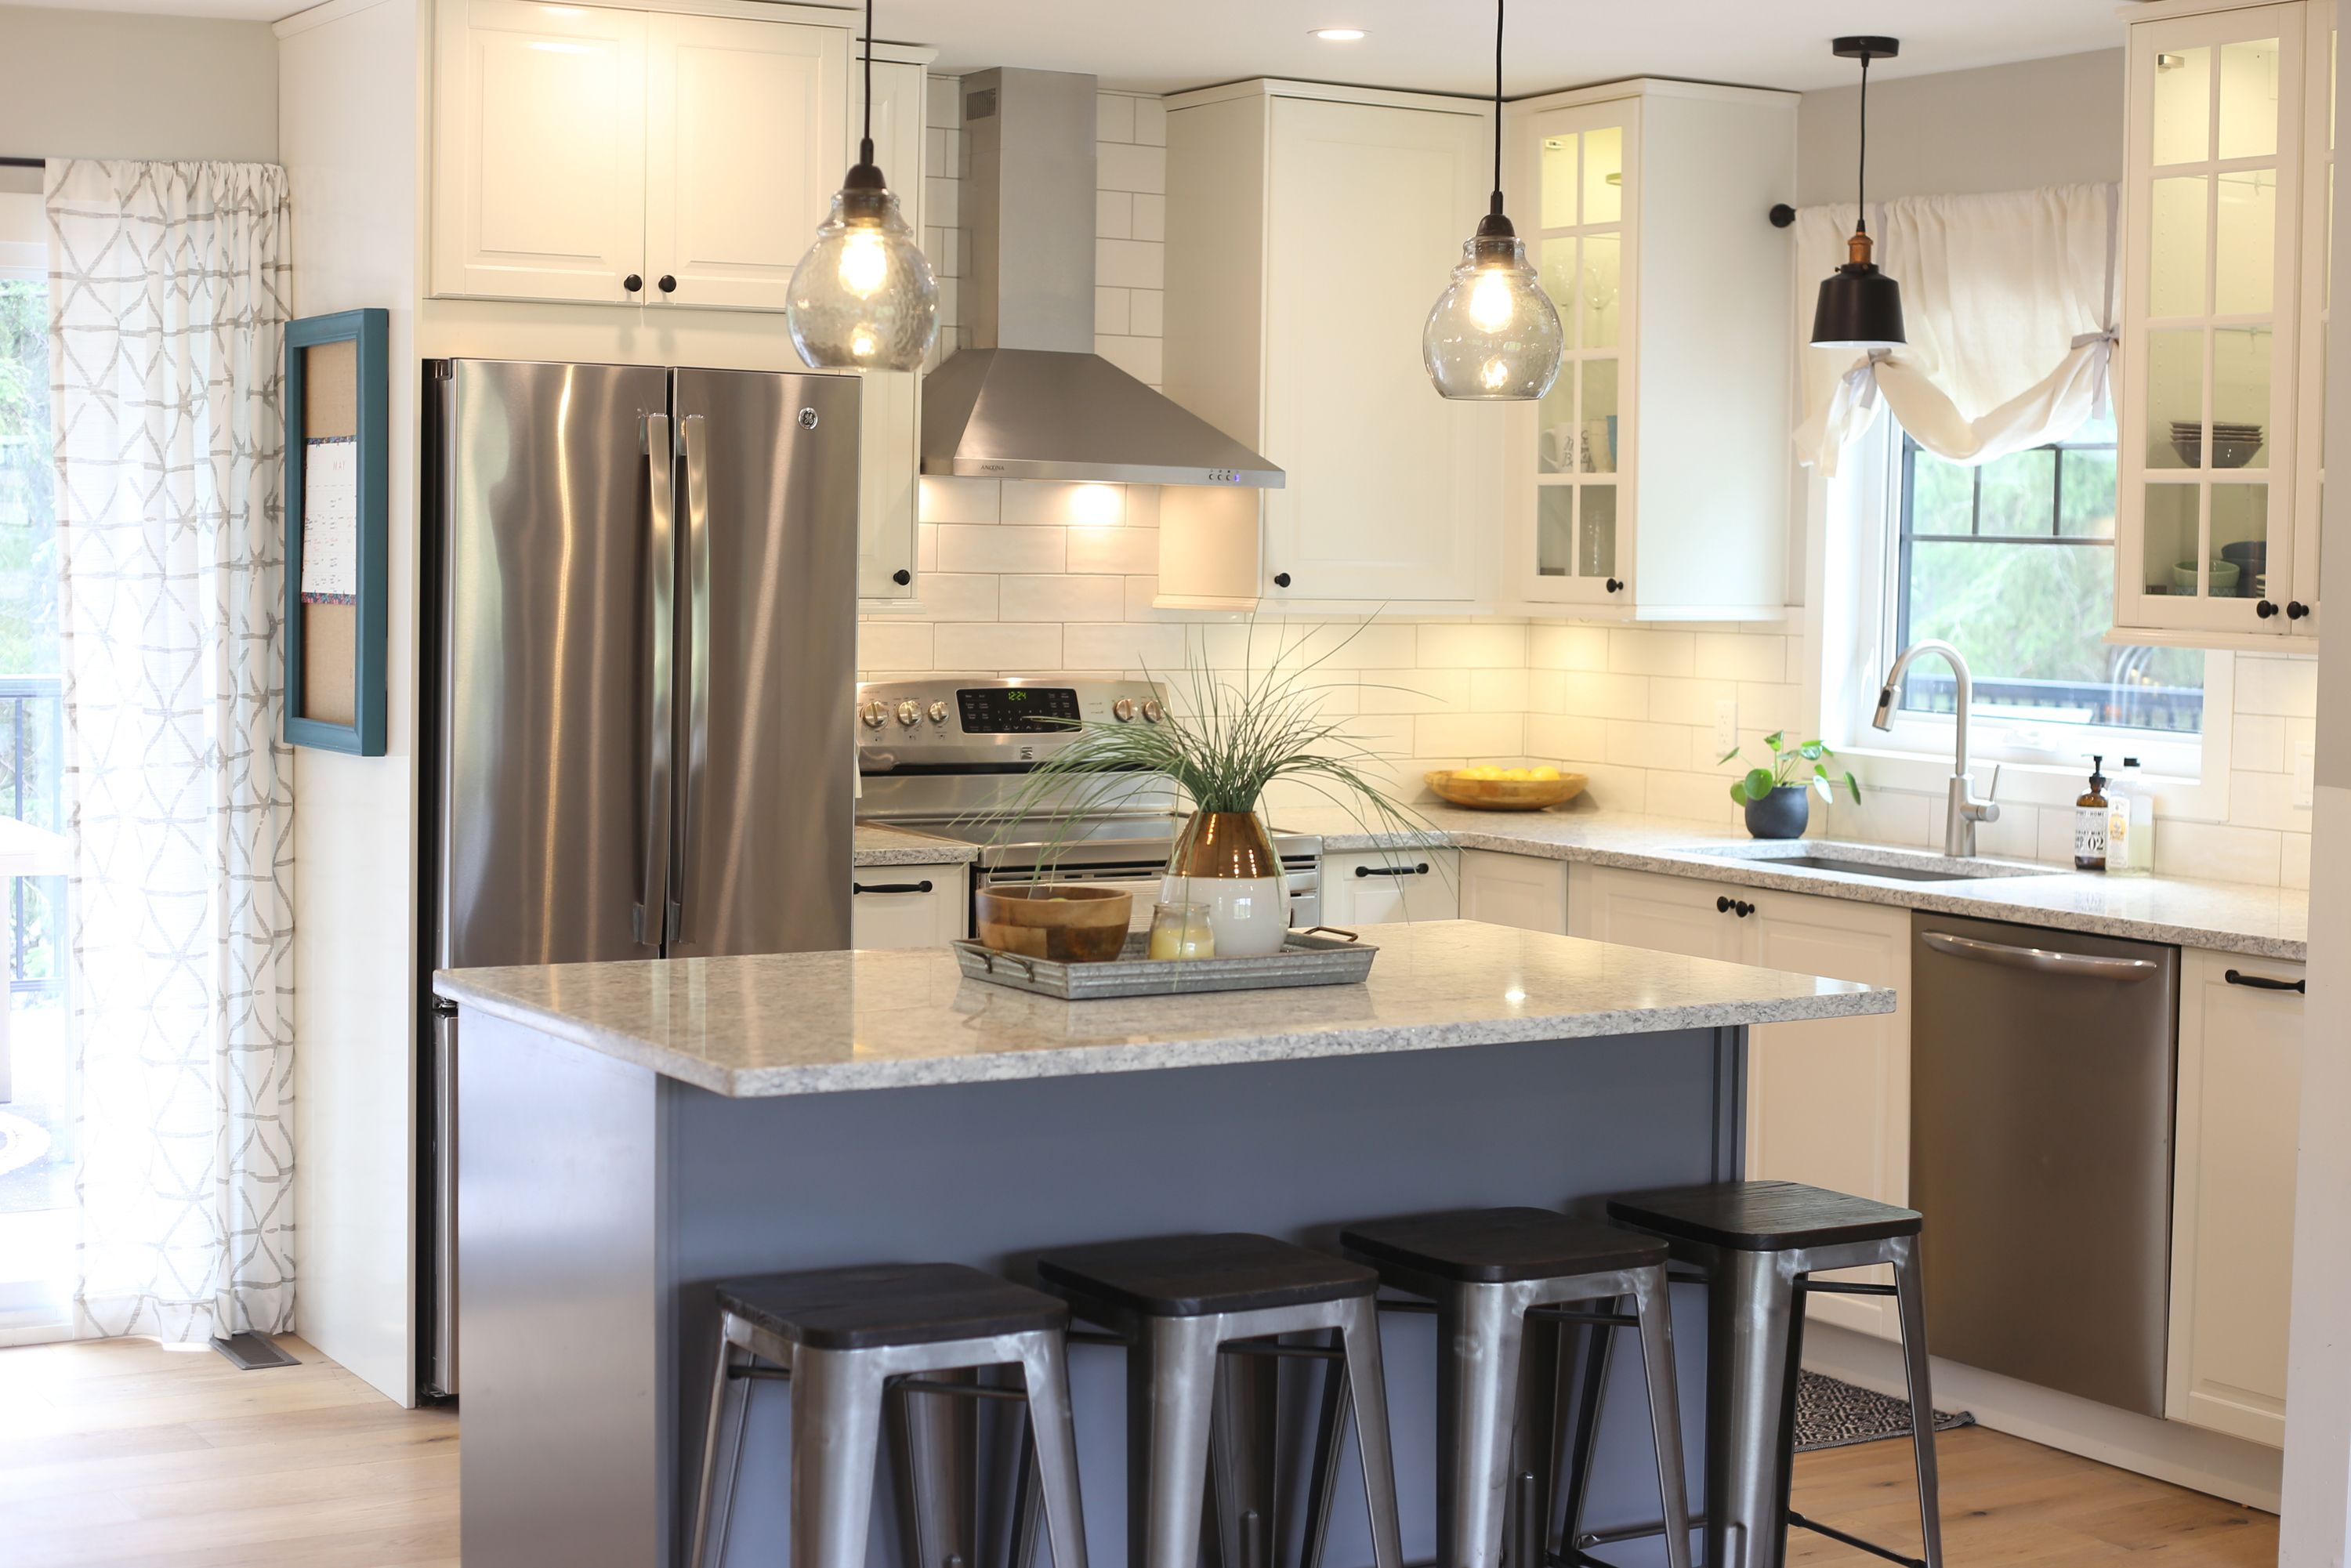 IKEA Kitchen Maximizes Space, Style and Storage (With